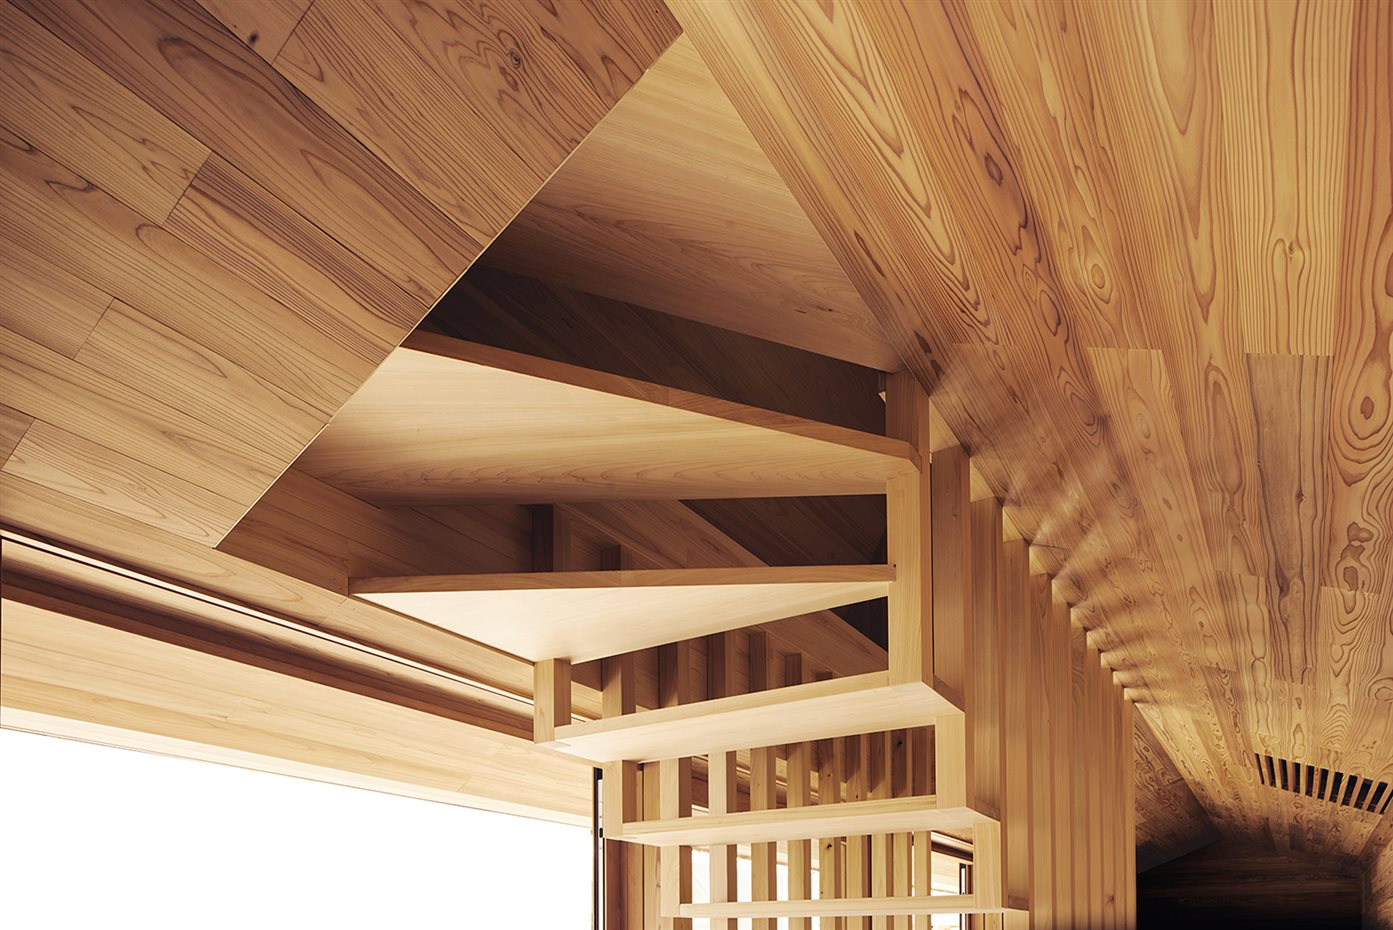 Yoshino Cedar House